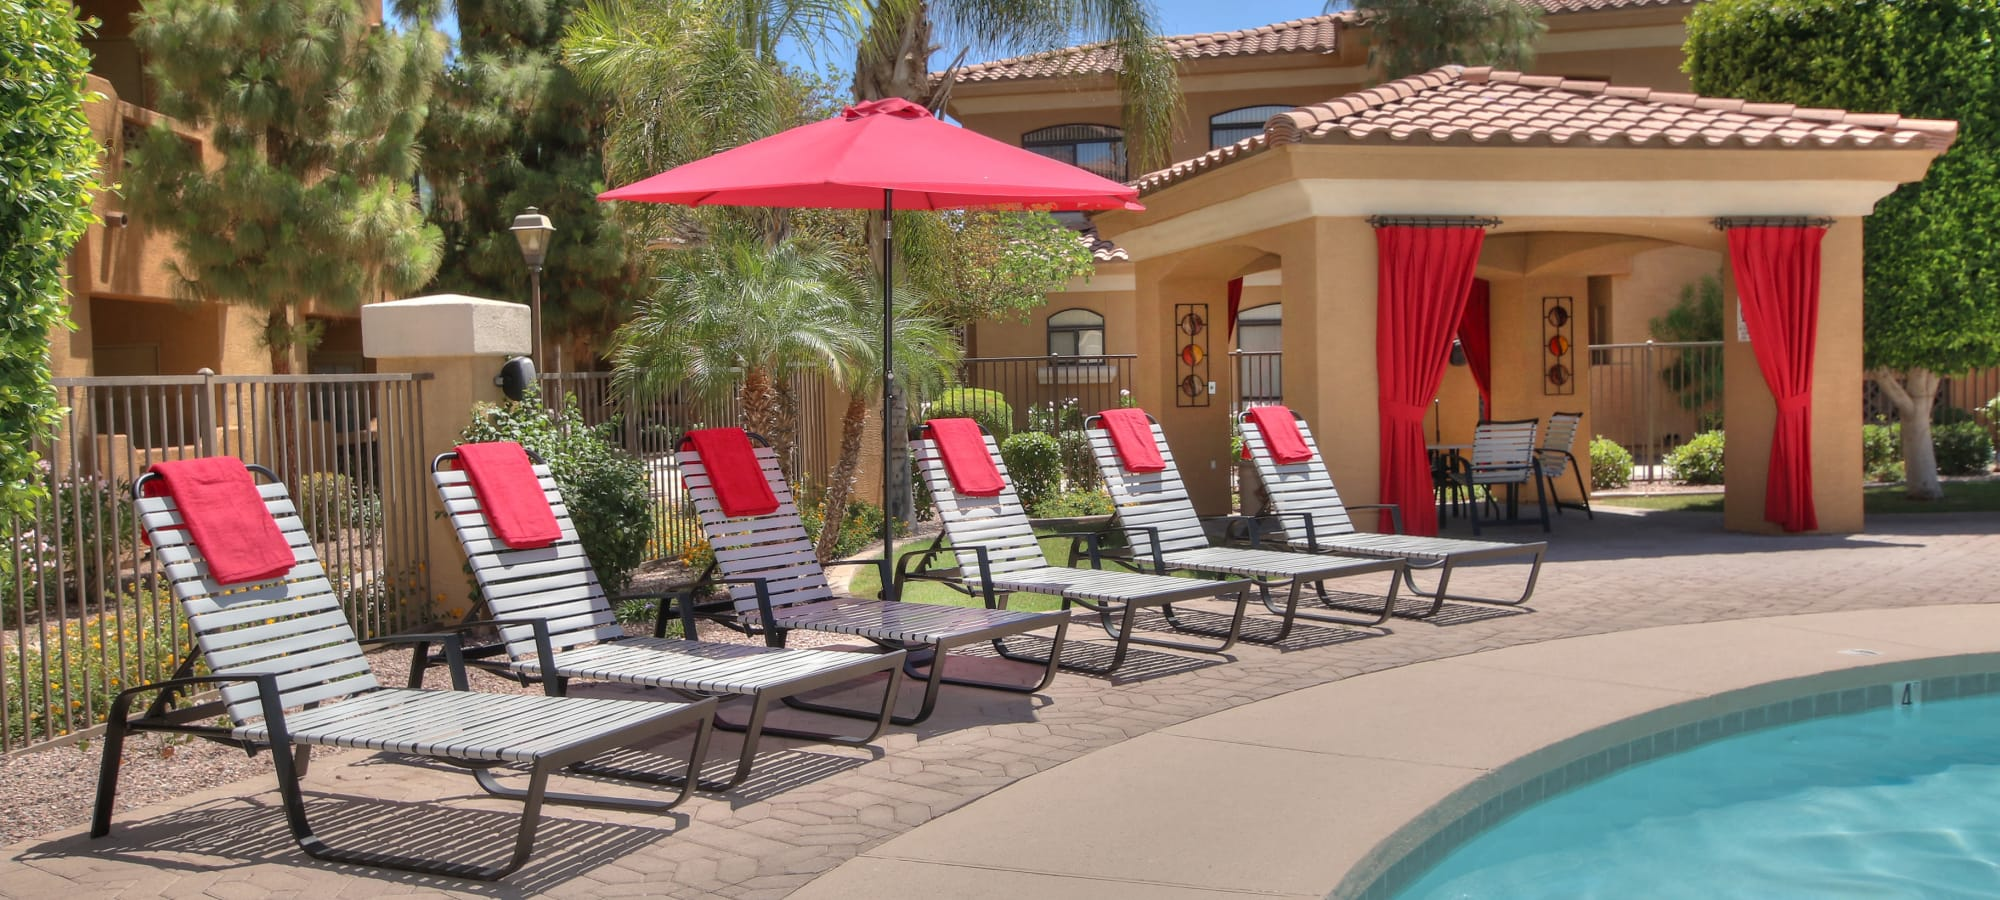 Poolside lounging and covered seating at The Retreat at the Raven in Phoenix, Arizona